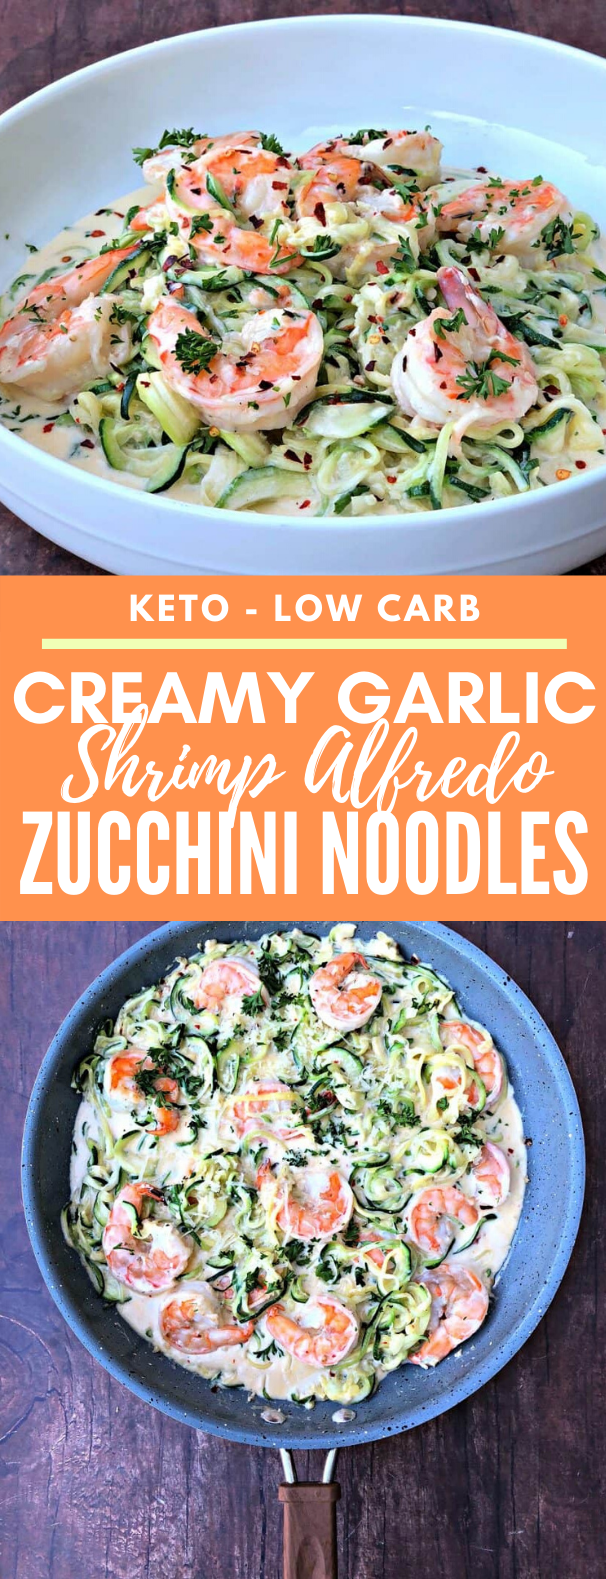 Keto Low-Carb Creamy Garlic Shrimp Alfredo Zucchini Noodles (Zoodles) #healthy #diet #ketogenic #seafood #nocarb